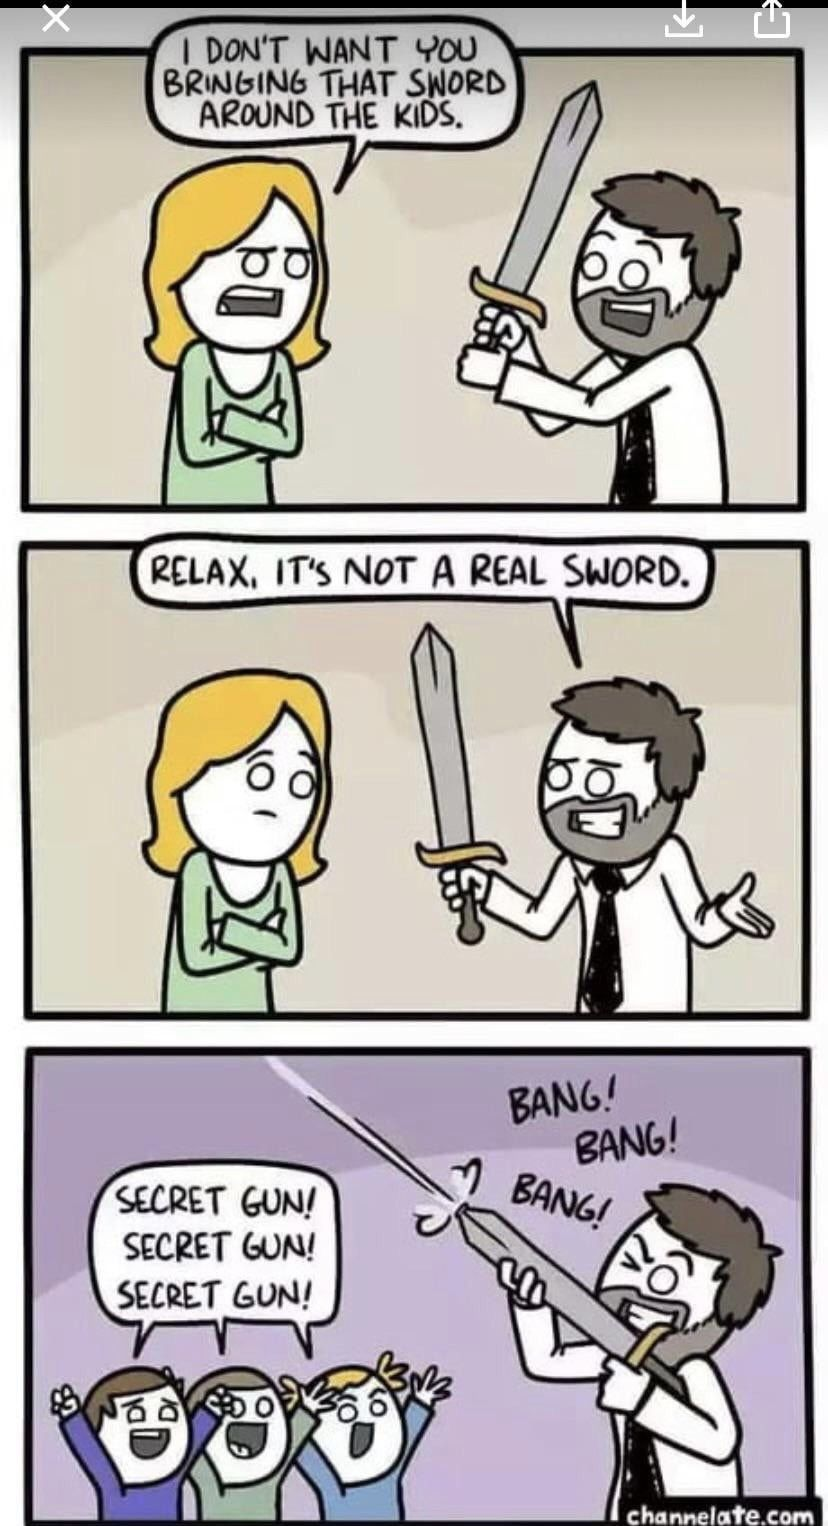 Now I want a sword gun